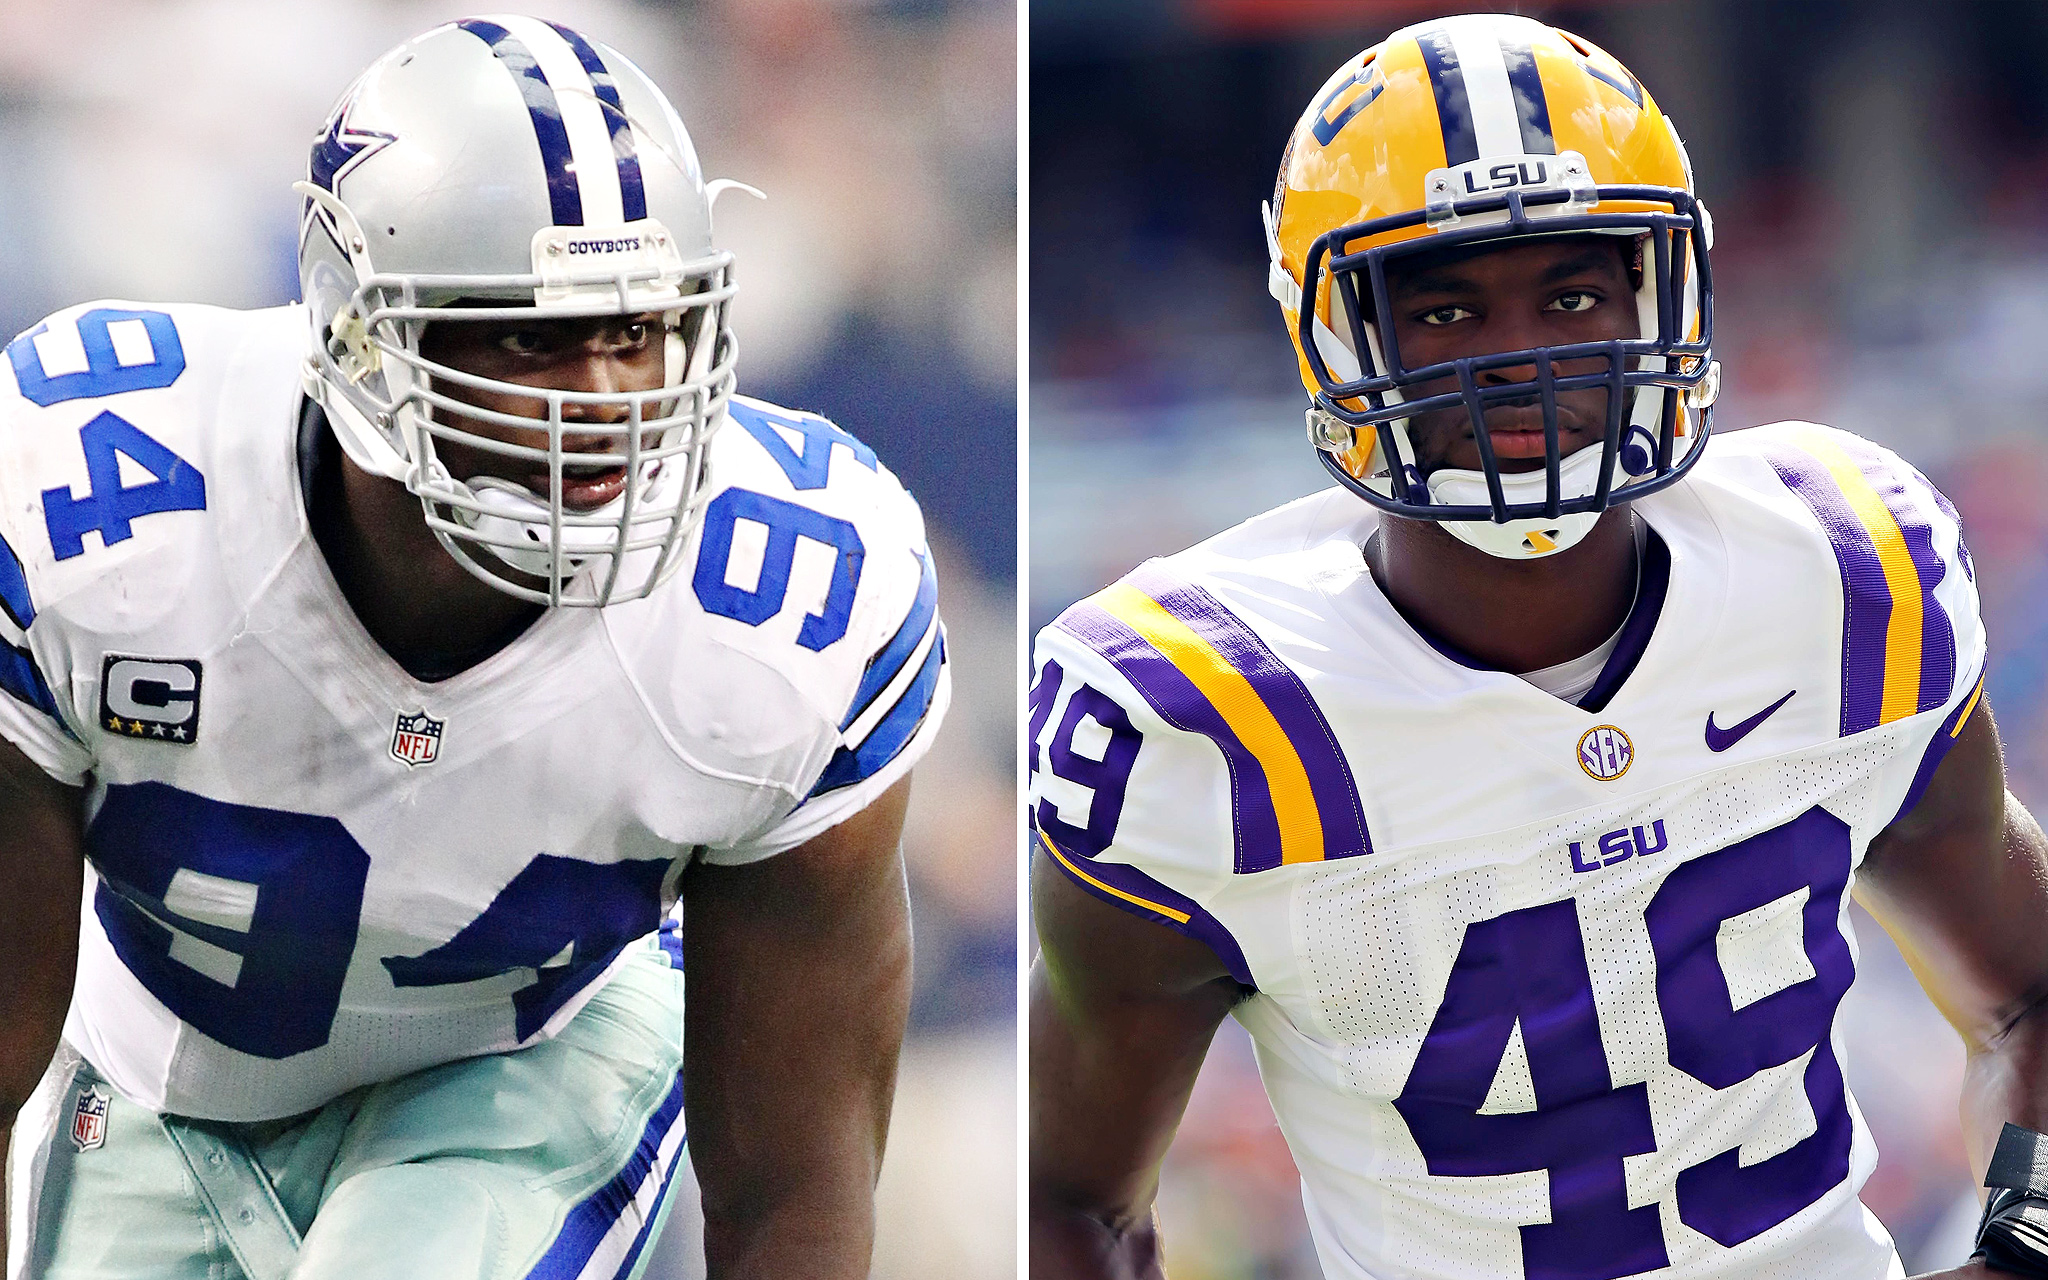 DeMarcus Ware, Dallas/Barkevious Mingo, LSU